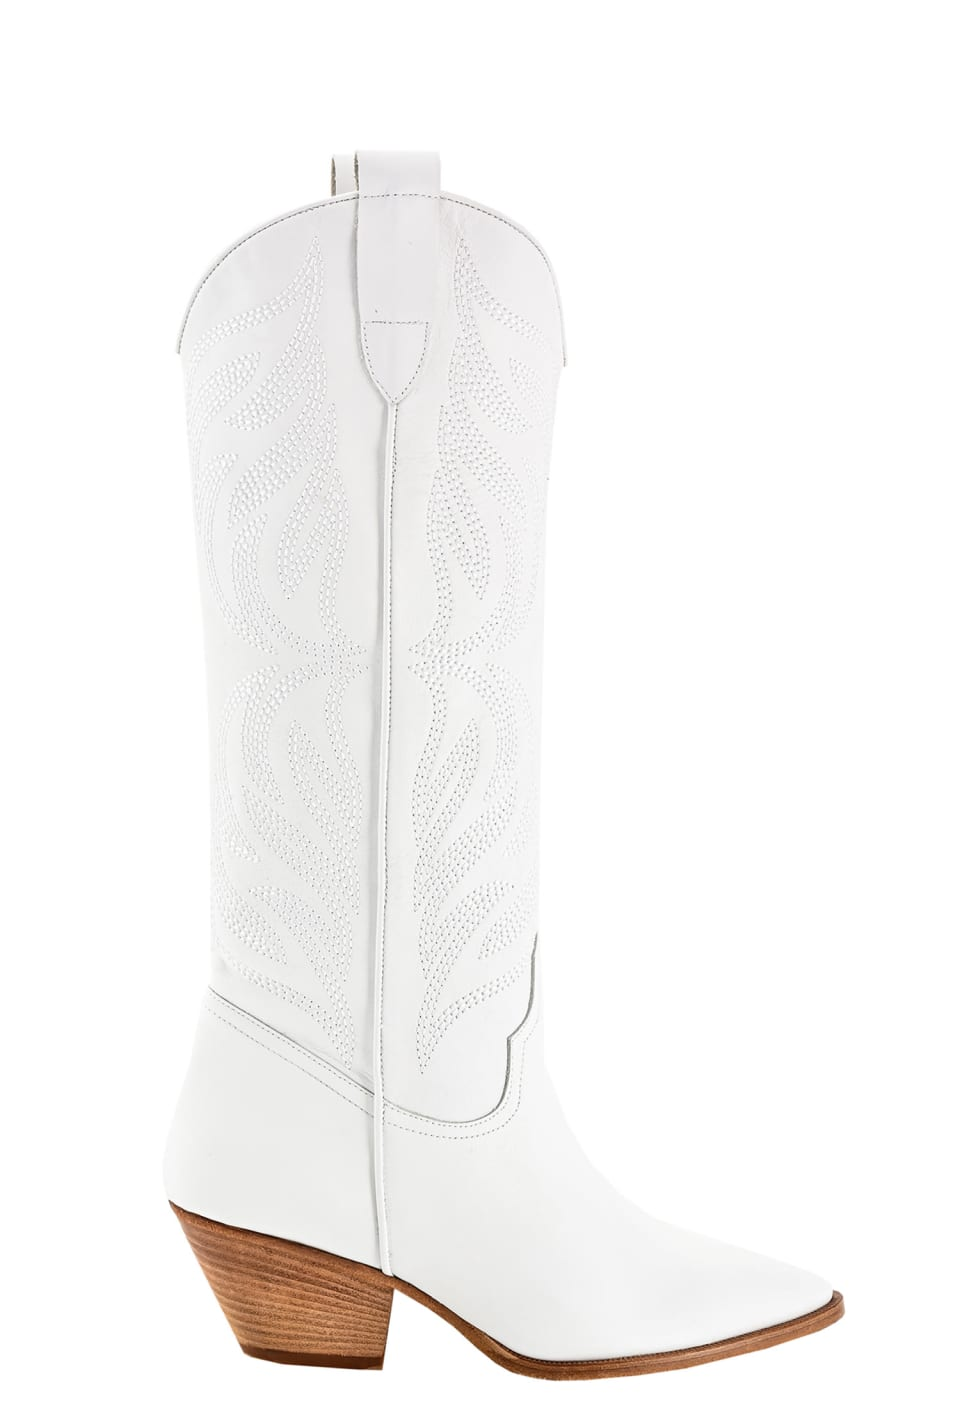 Knee-high cowboy boots - Pinko